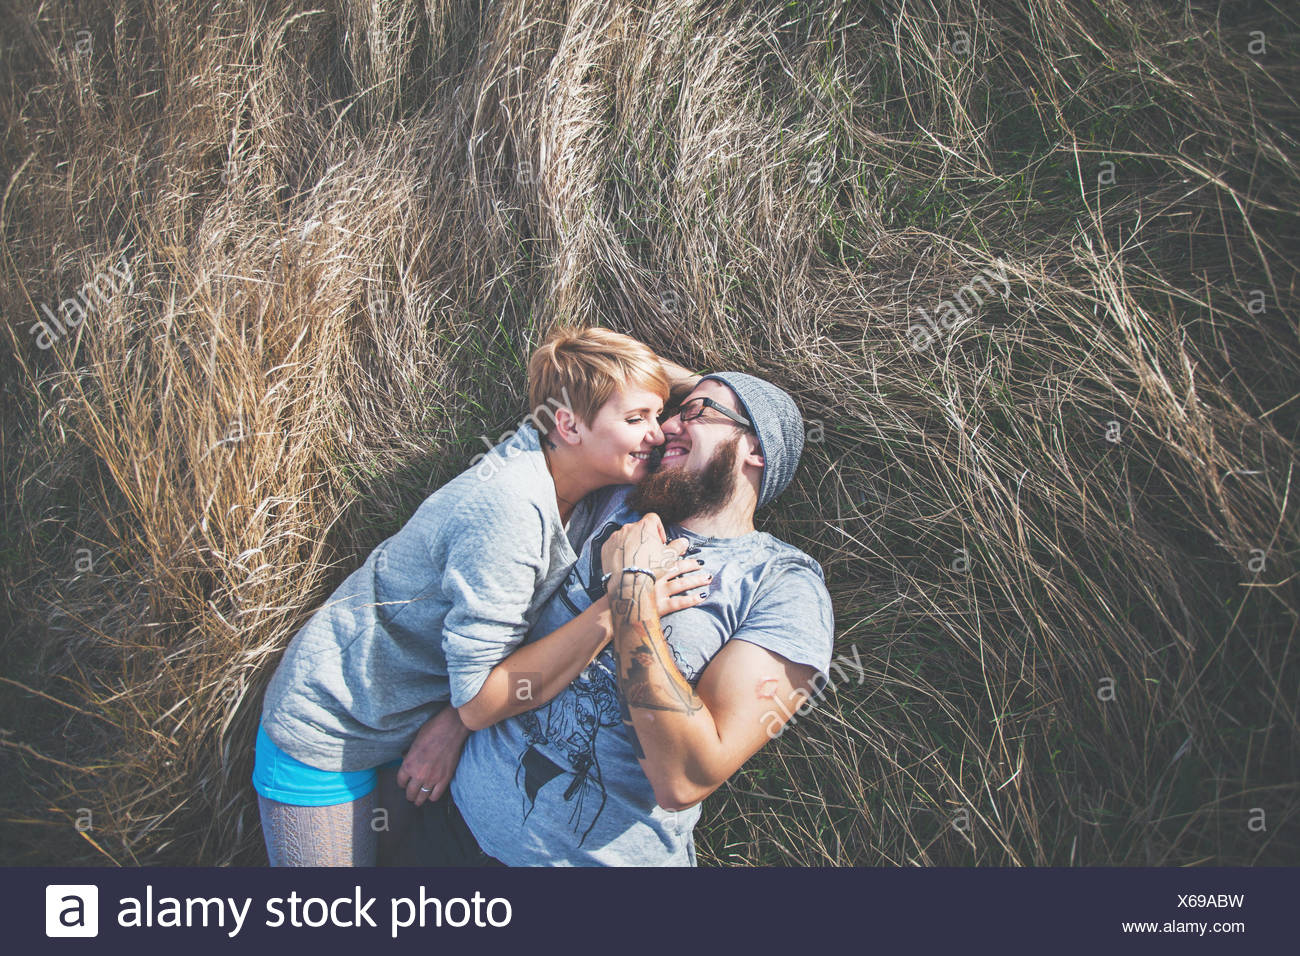 Elevated view of a couple lying on the grass - Stock Image